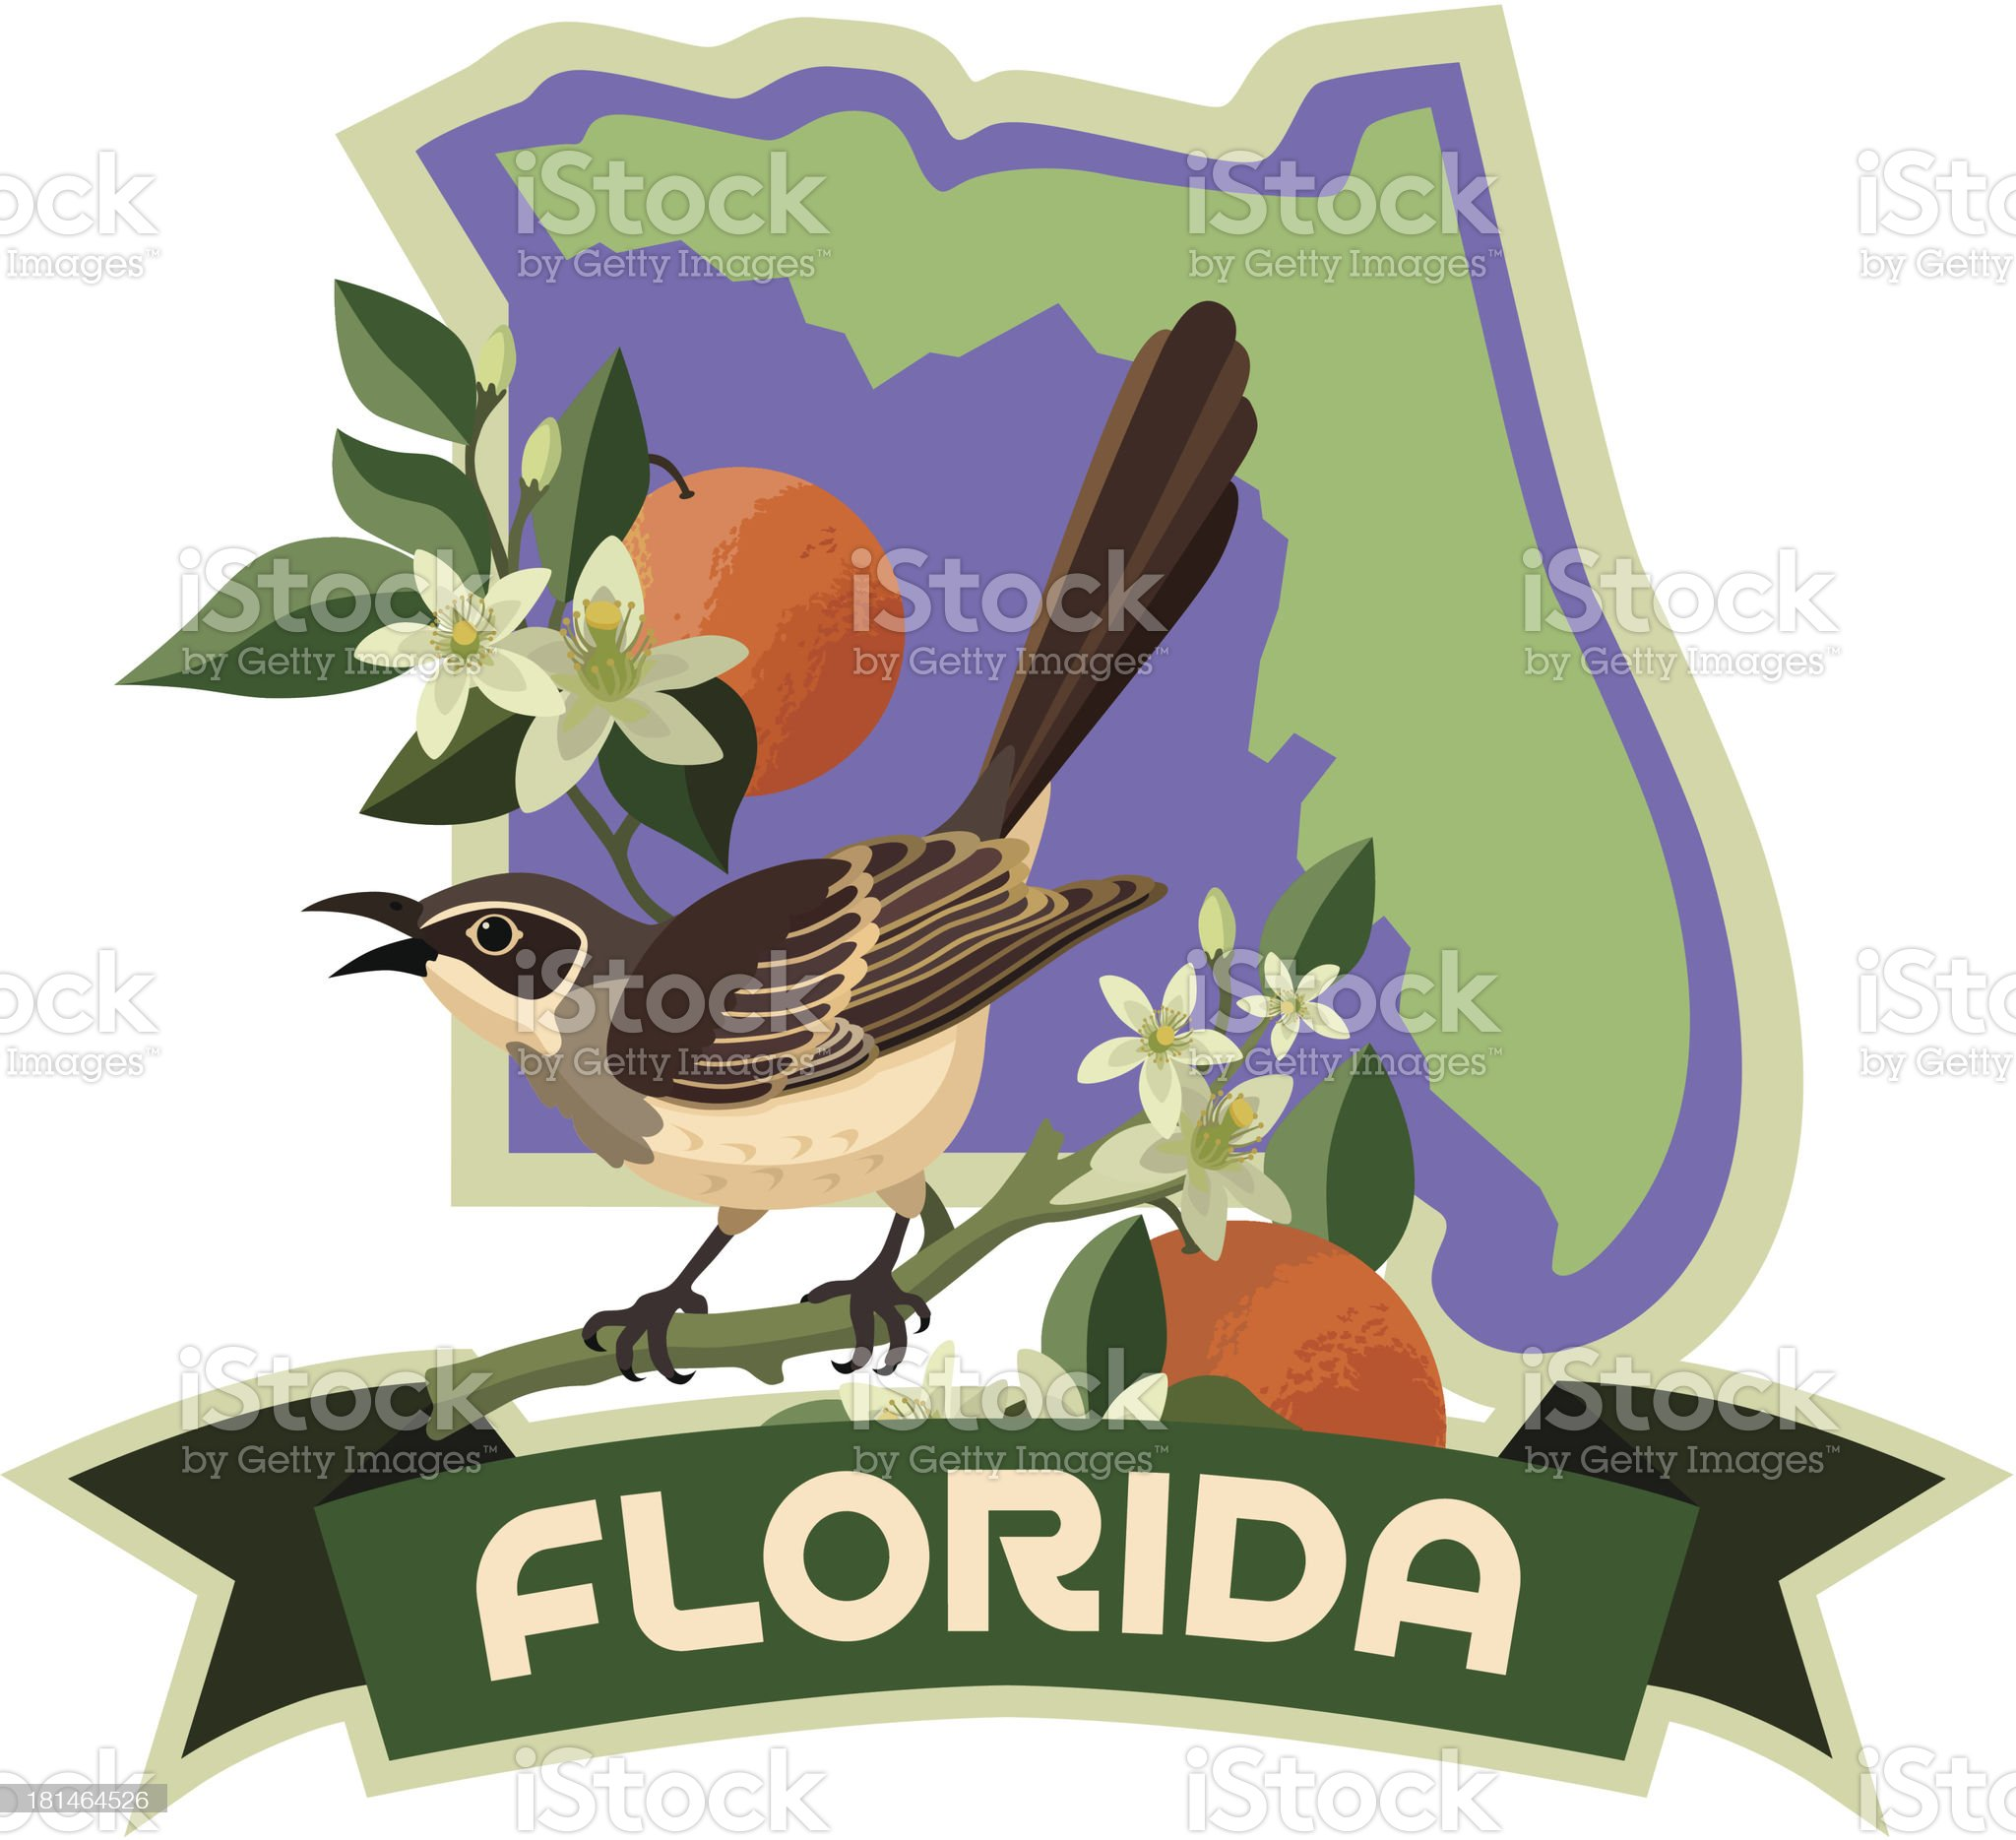 Florida state bird and flower royalty-free stock vector art